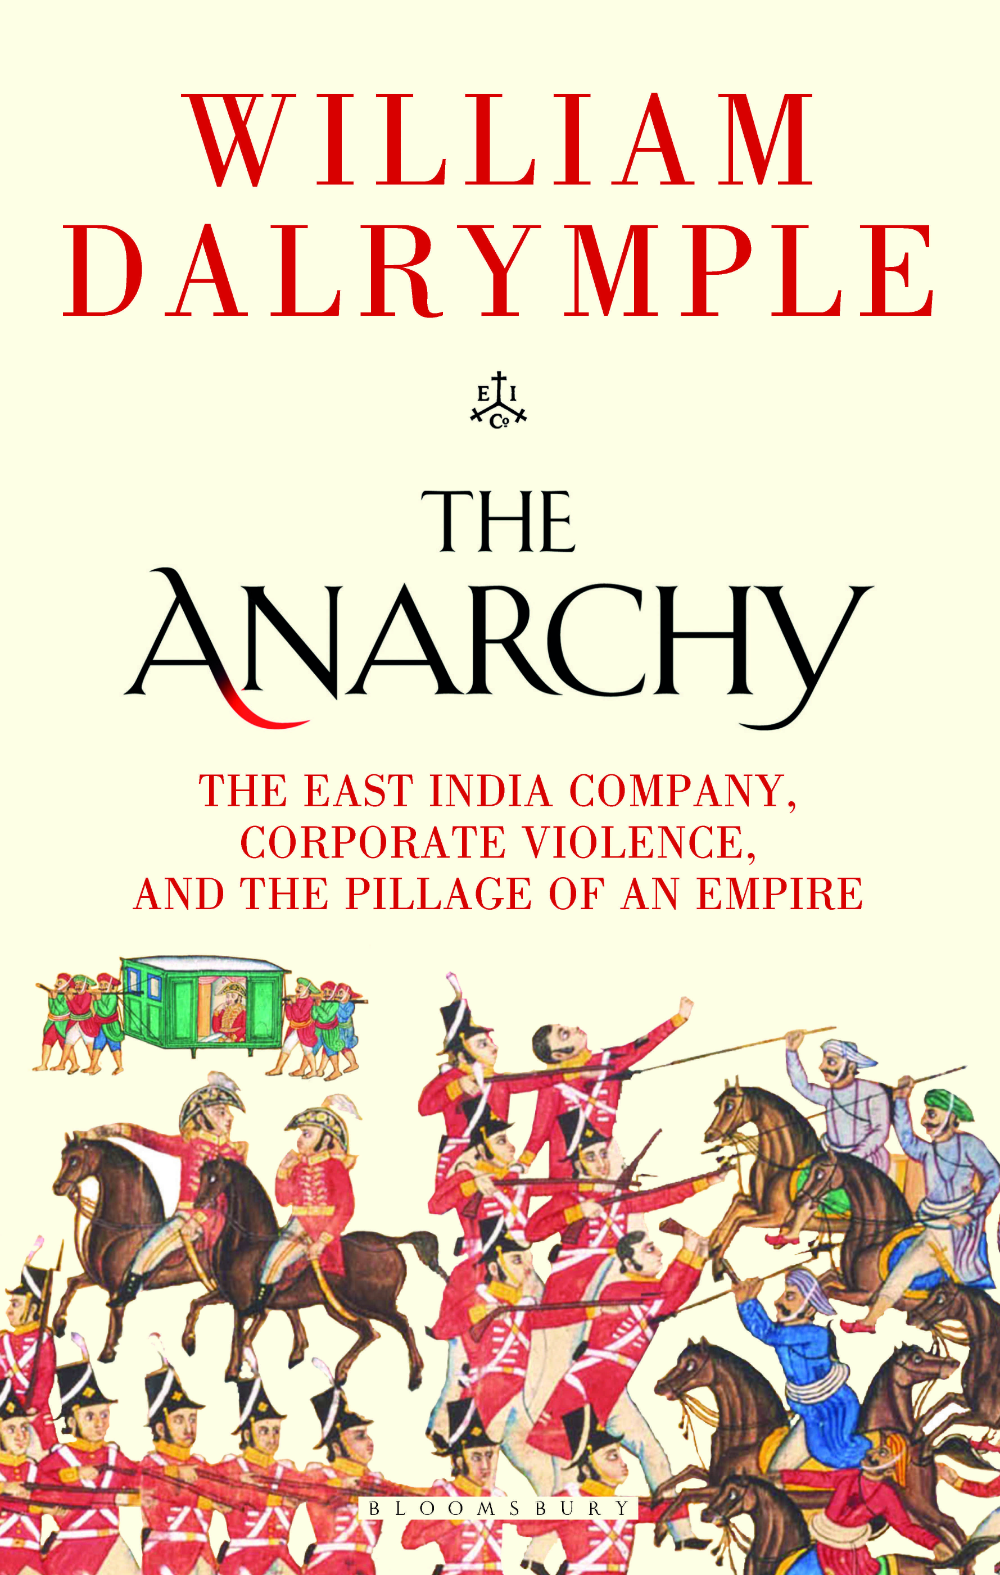 The Anarchy William Dalrymple Chronicles An Early Instance Of Corporate Power Over Governance East India Company Books William Dalrymple